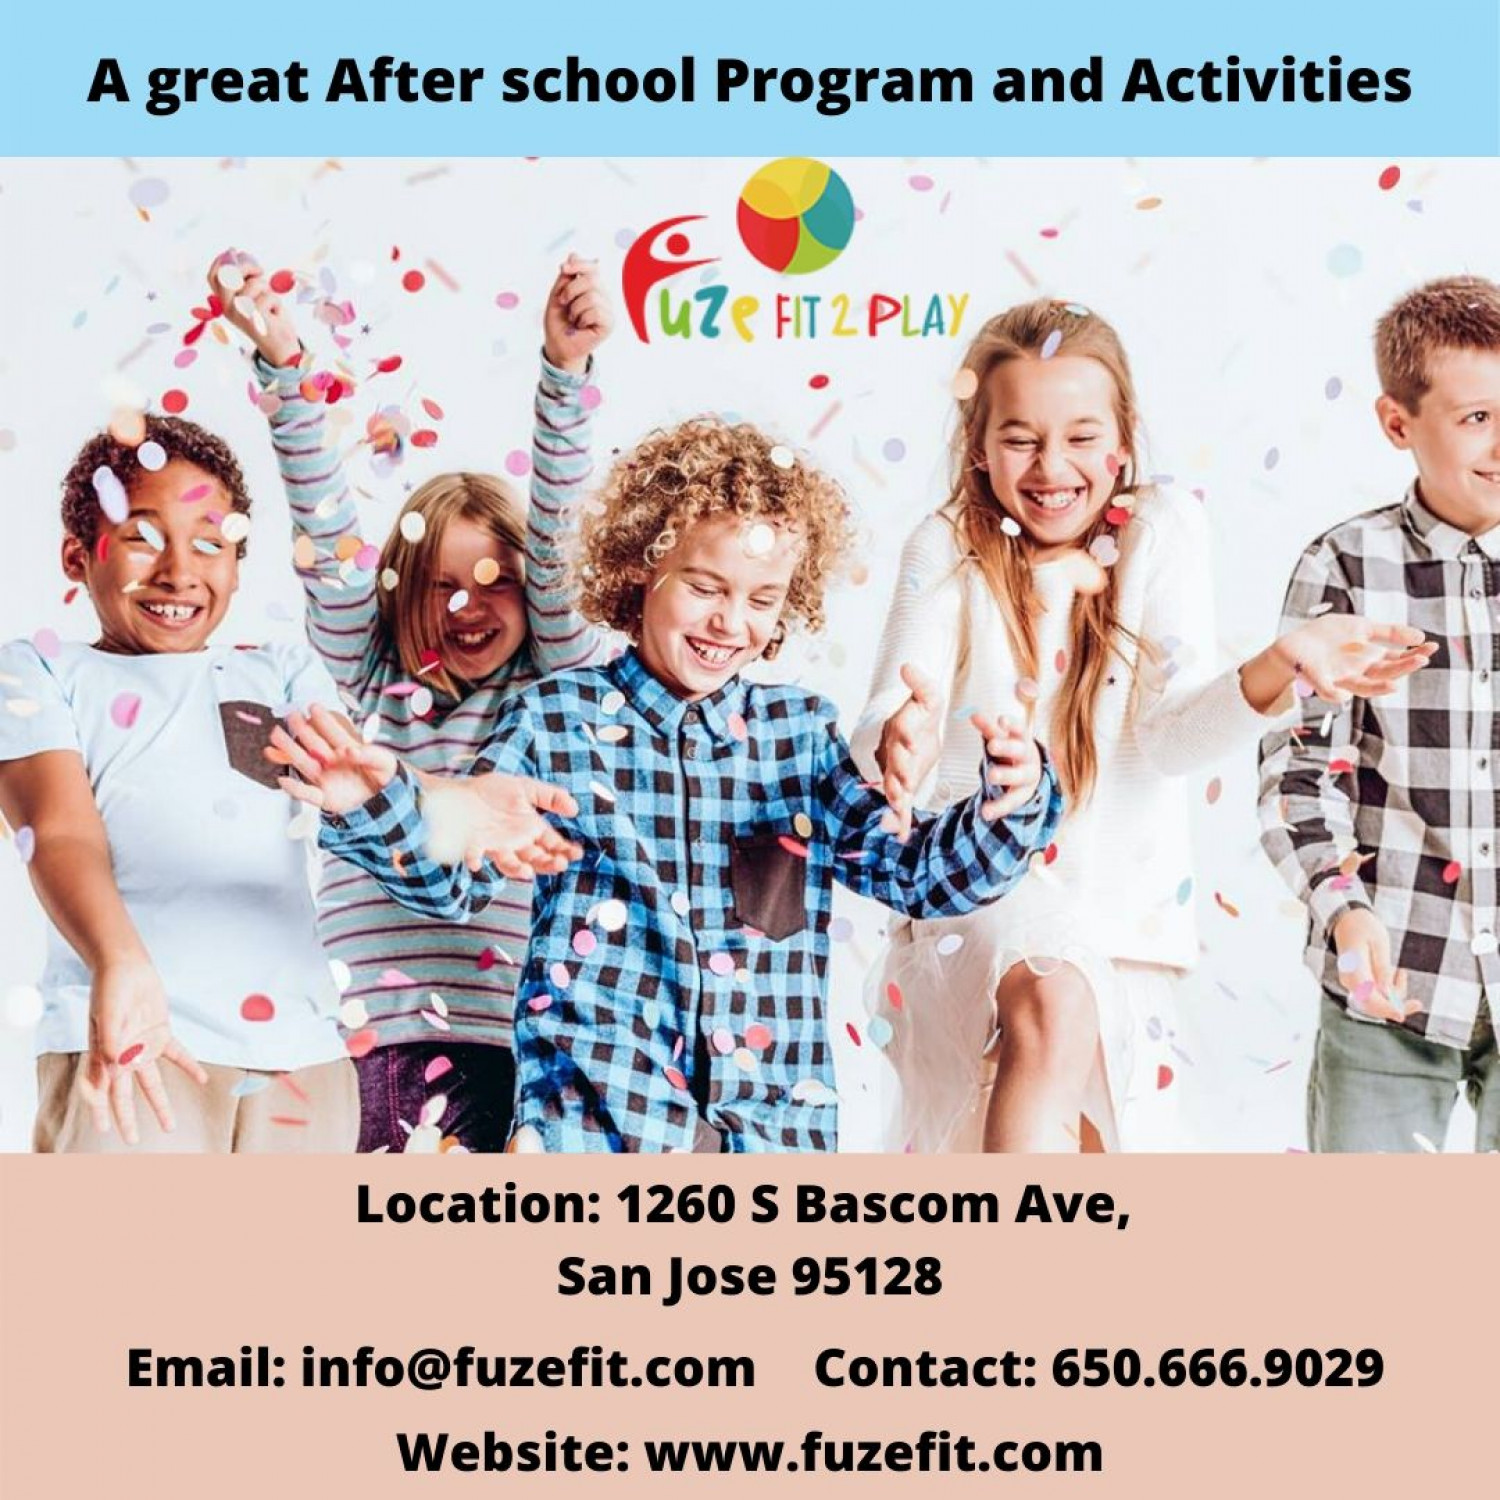 A great After school Program and Activities Infographic